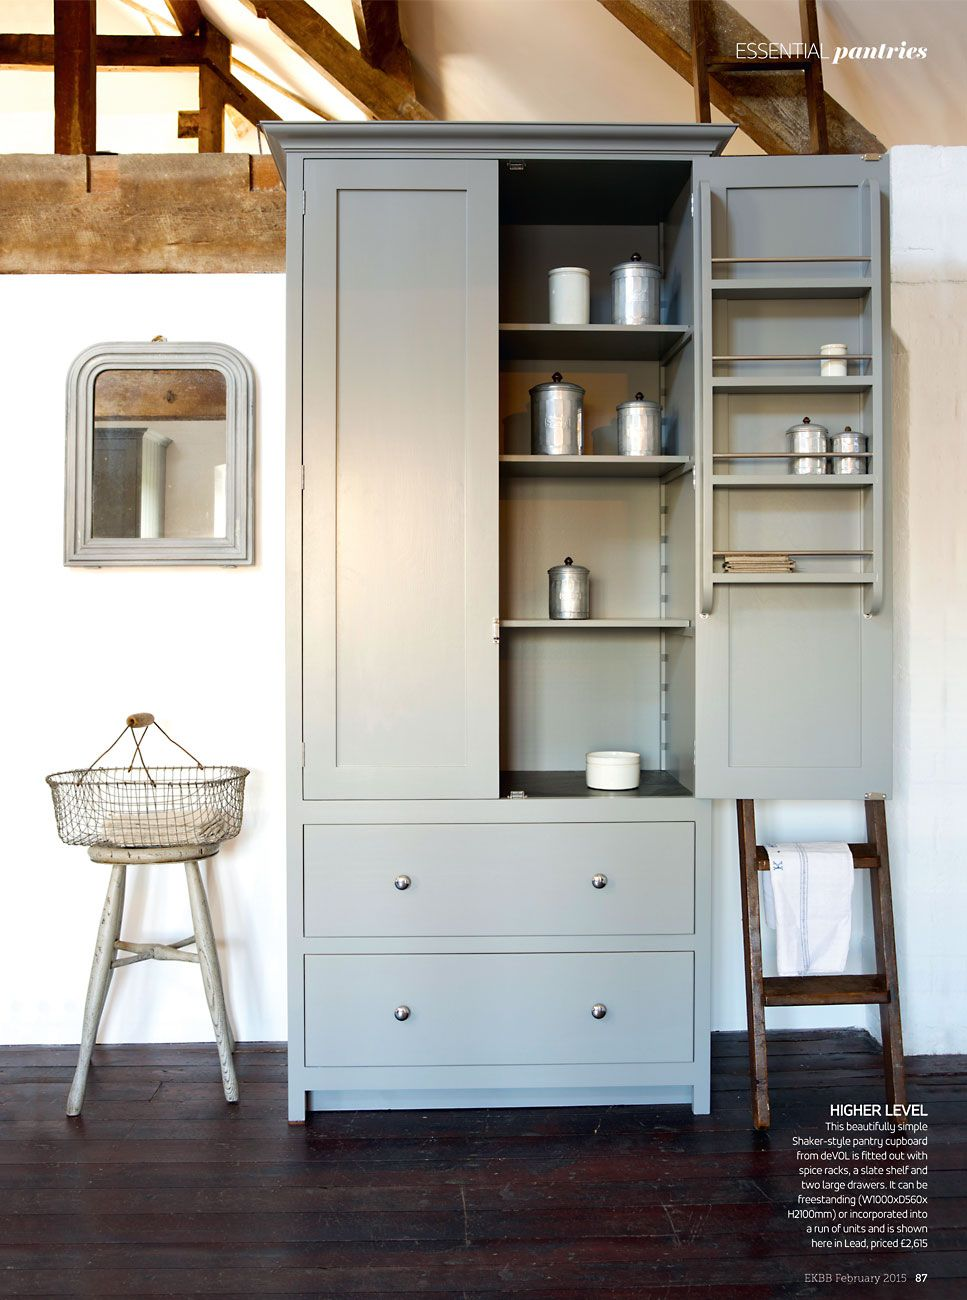 Our real shaker pantry cupboard has received an amazing full page feature in the february 2015 issue of ekbb mag